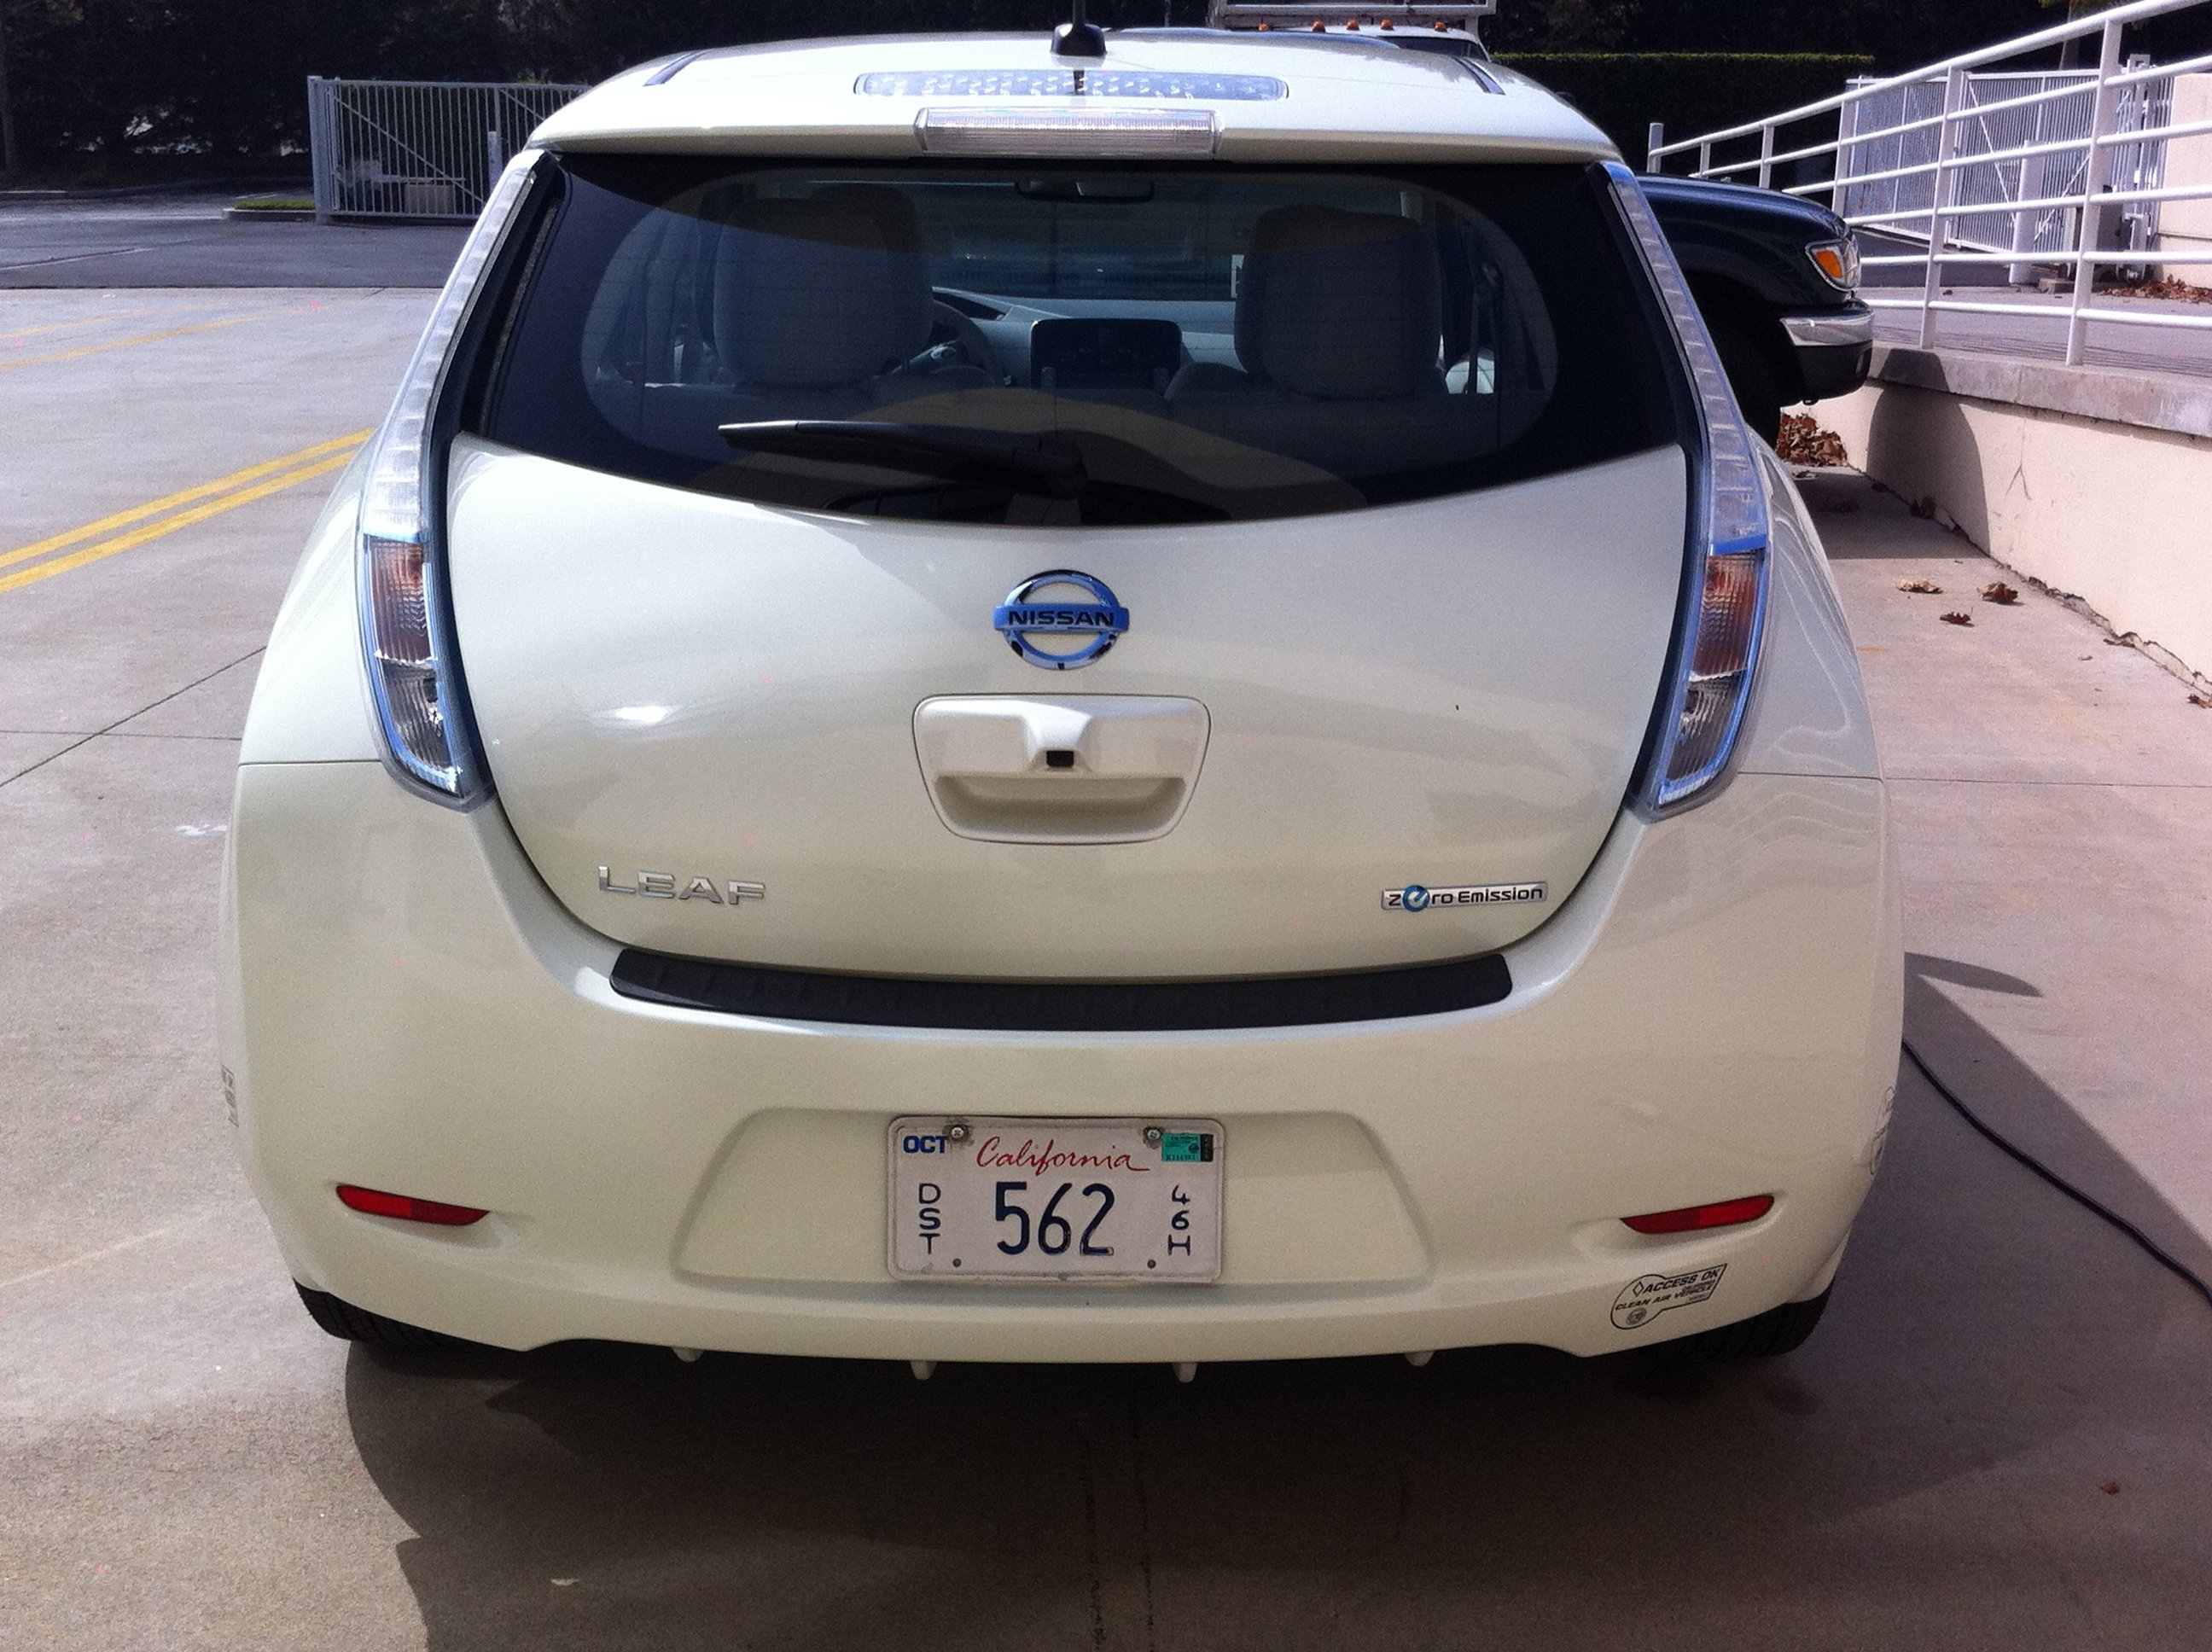 The EV Experience: Is Range Anxiety Real? (Part 2)